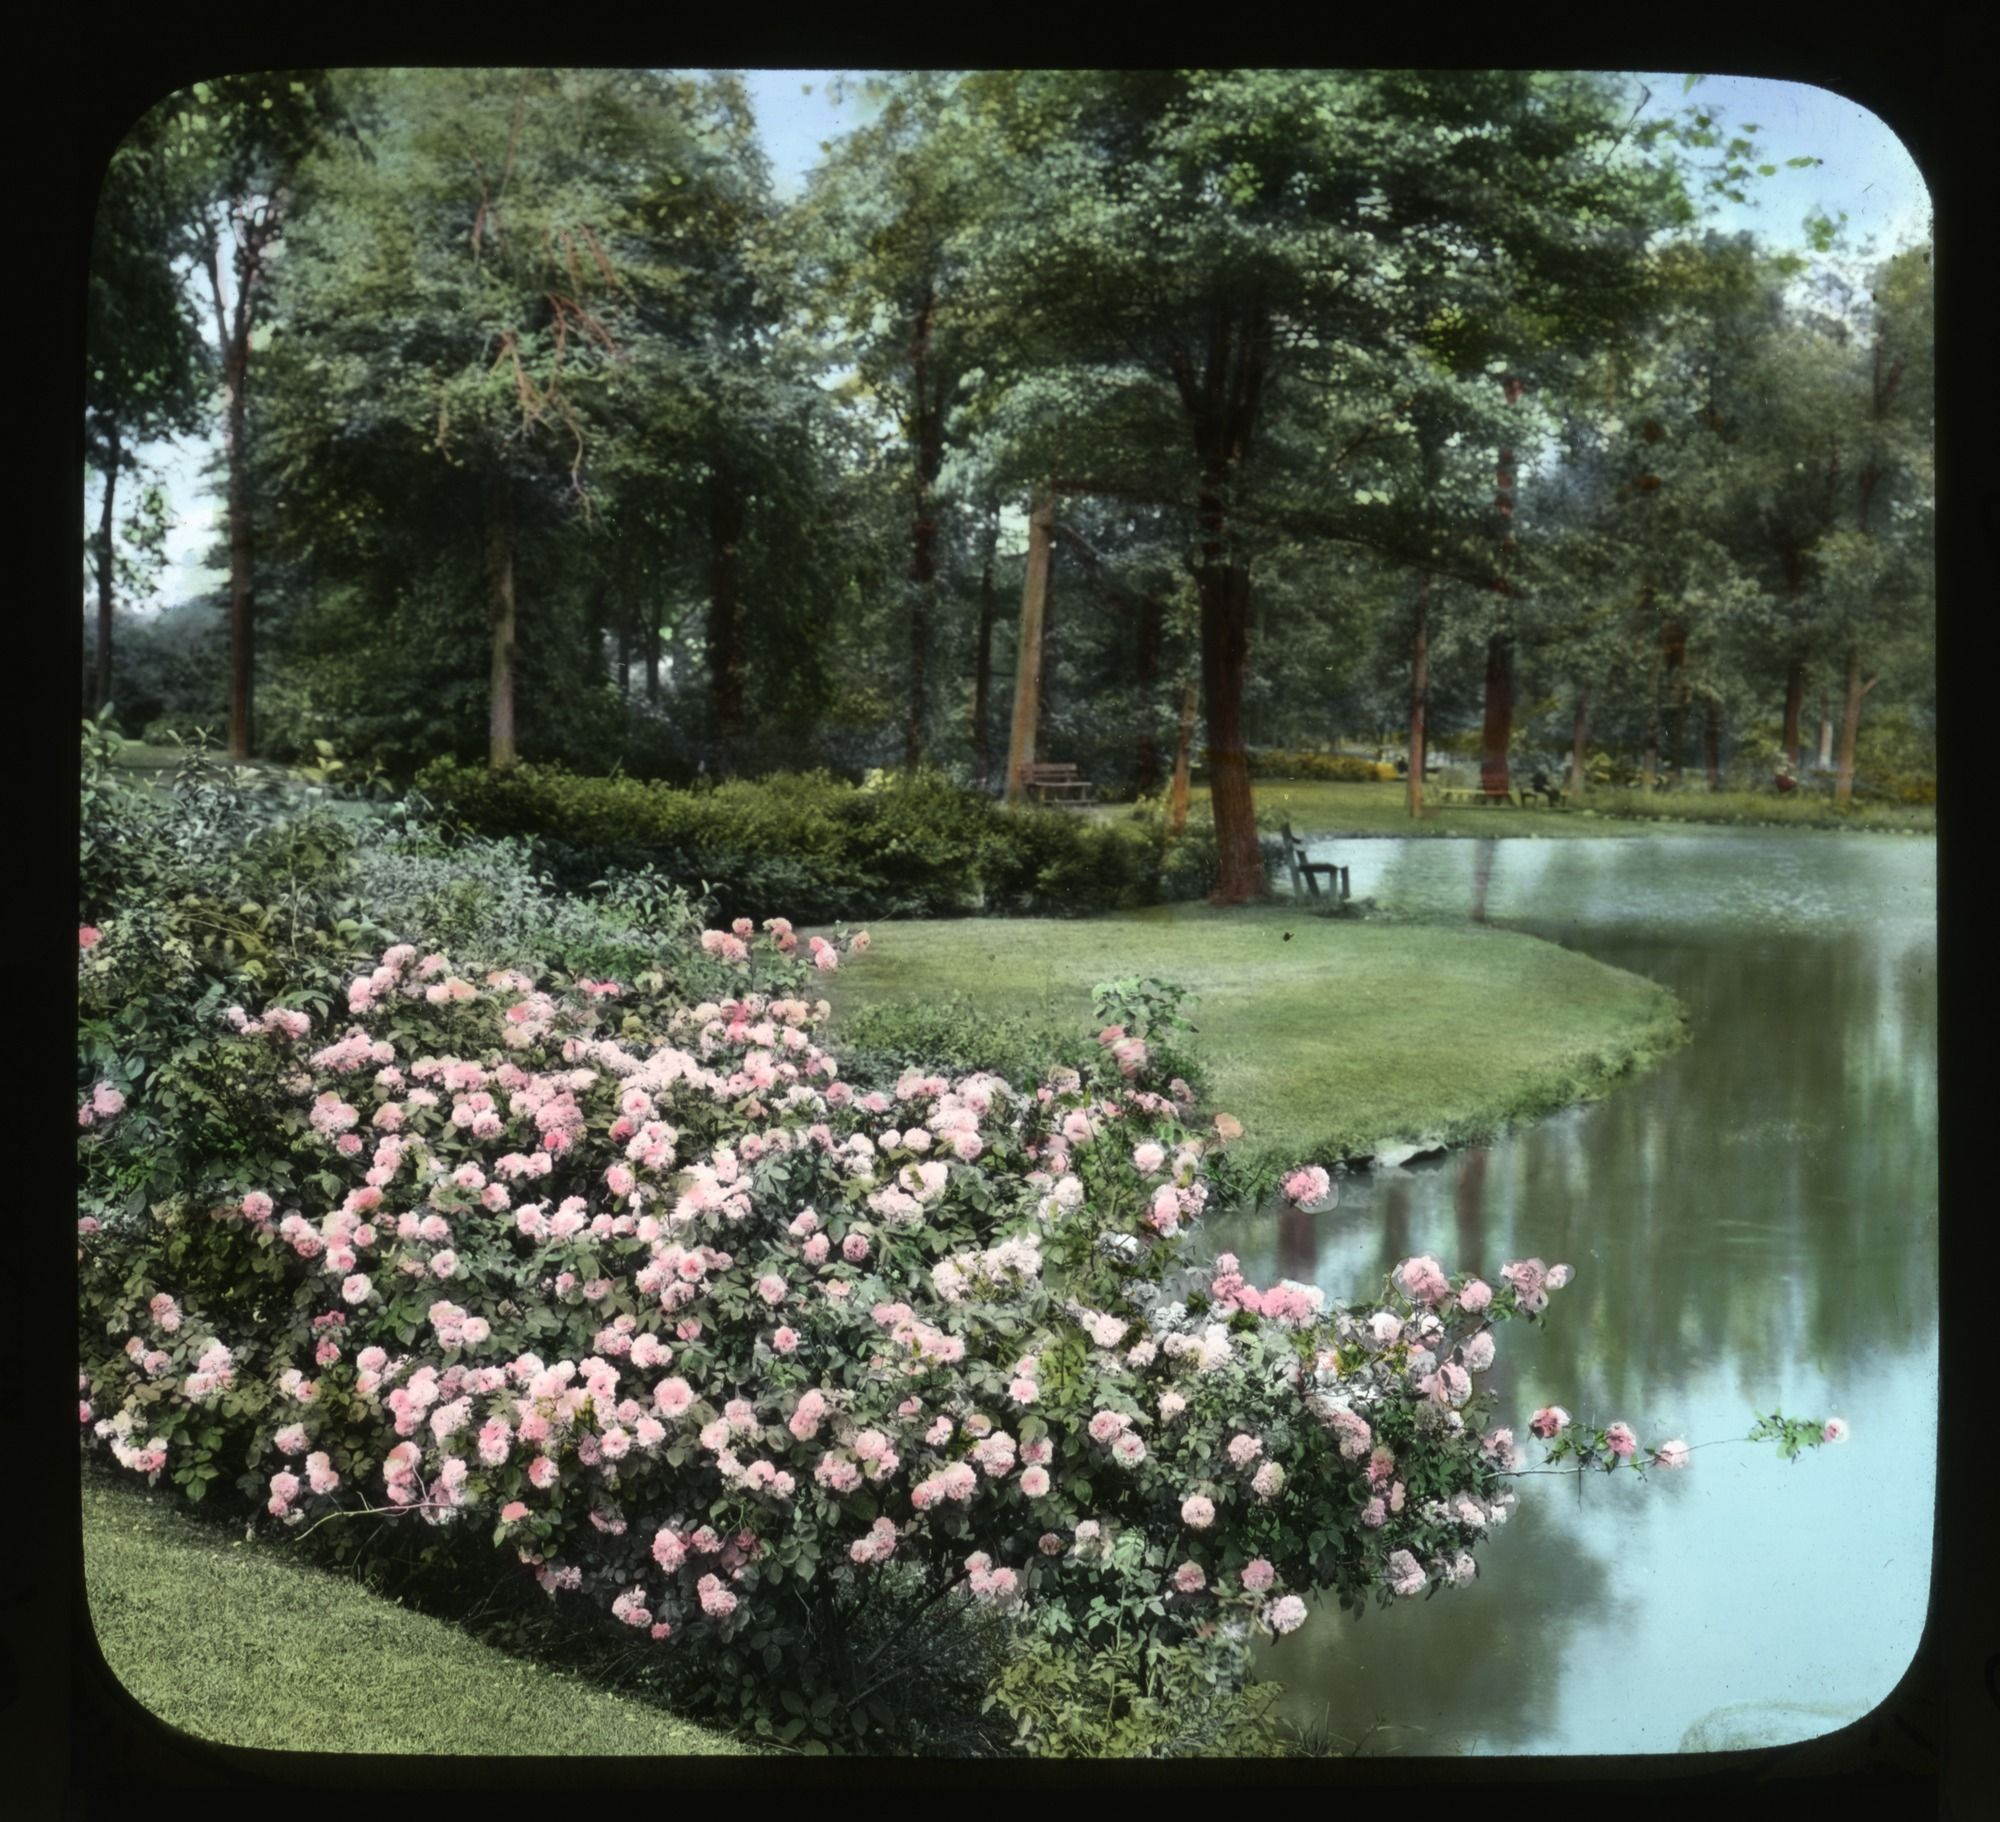 When Charles Pond, a wealthy businessman, bequeathed his estate to the City of Hartford, CT in the late 1800s it became one of the first municipal rose gardens established in America.  This glass lantern slide depicts the pond a rose bush in 1906. Smithsonian Institution, Archives of American Gardens, J. Horace McFarland Collection. #ArchivesMonth2013 #ElizabethPark #roses @American Rose Society